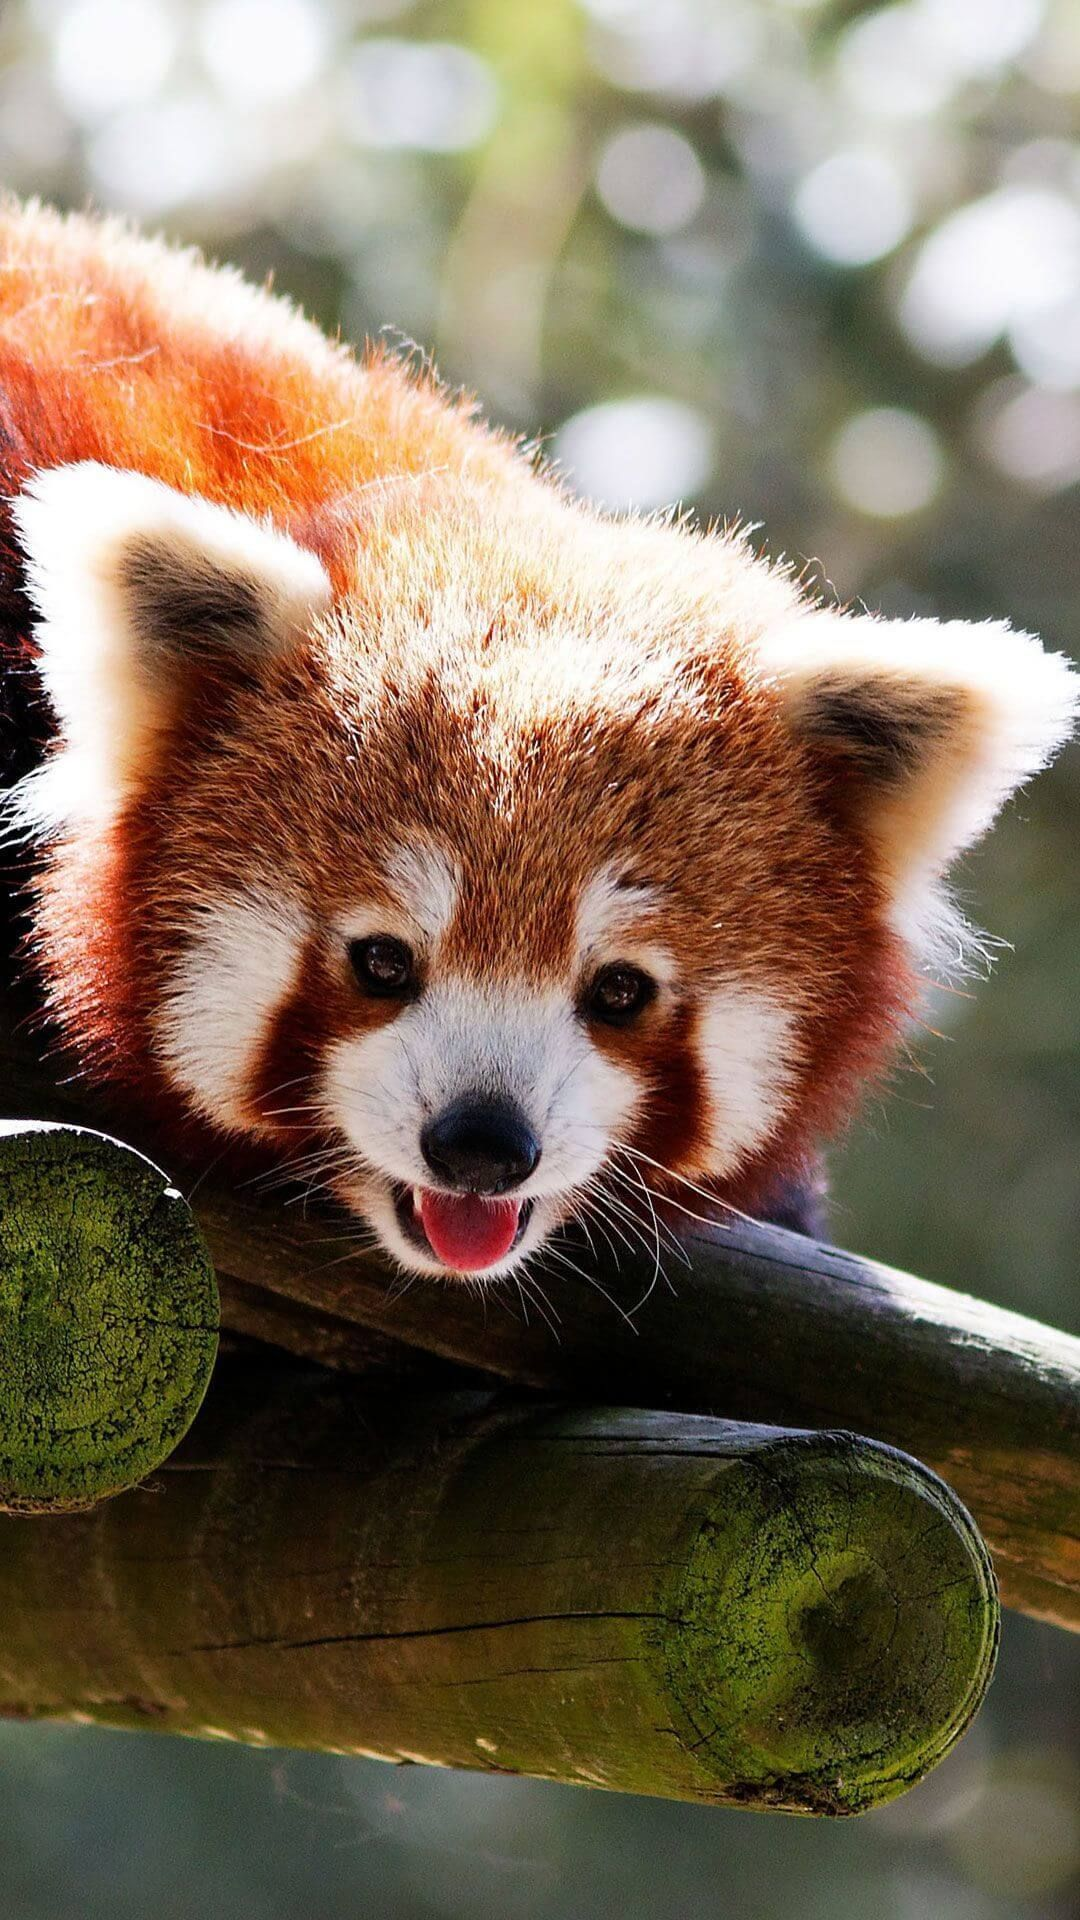 Cute Baby Red Pandas Wallpaper Iphone Hd Animal Wallpaper For Panda Wallpapers Panda Background Cute Panda Wallpaper